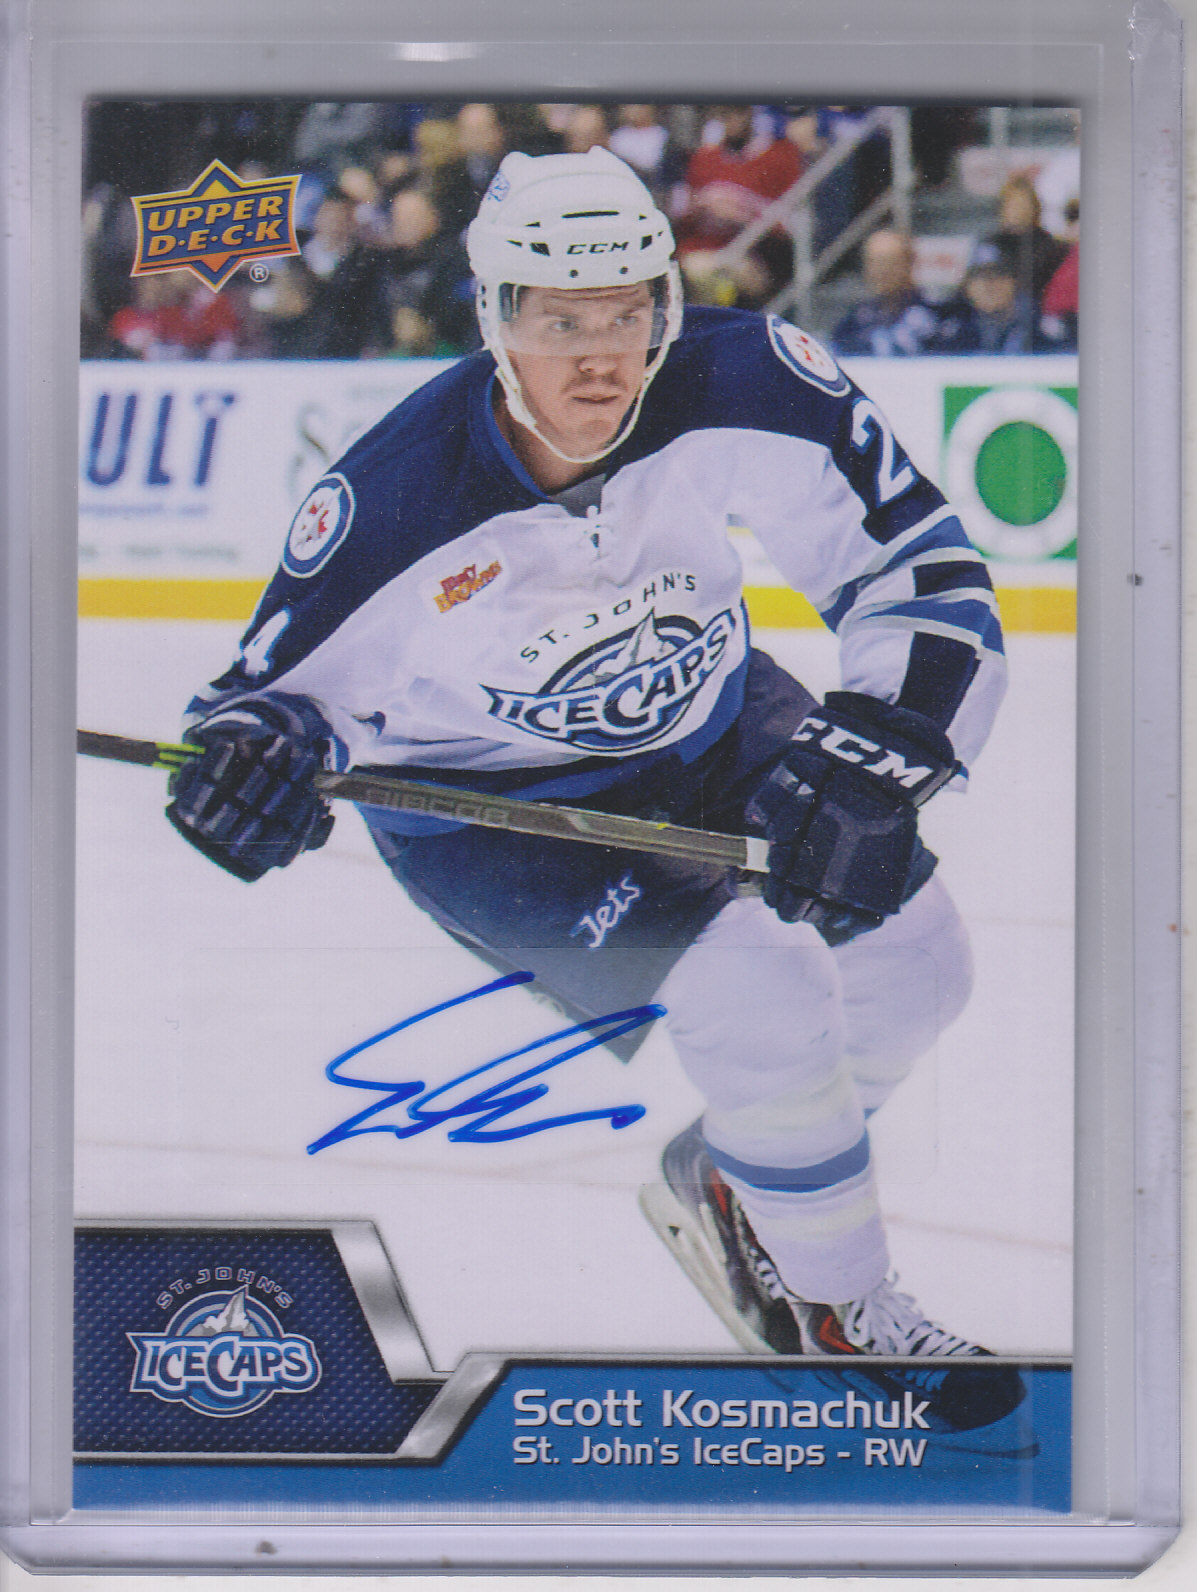 2014-15 Upper Deck AHL Autographs #130 Scott Kosmachuk